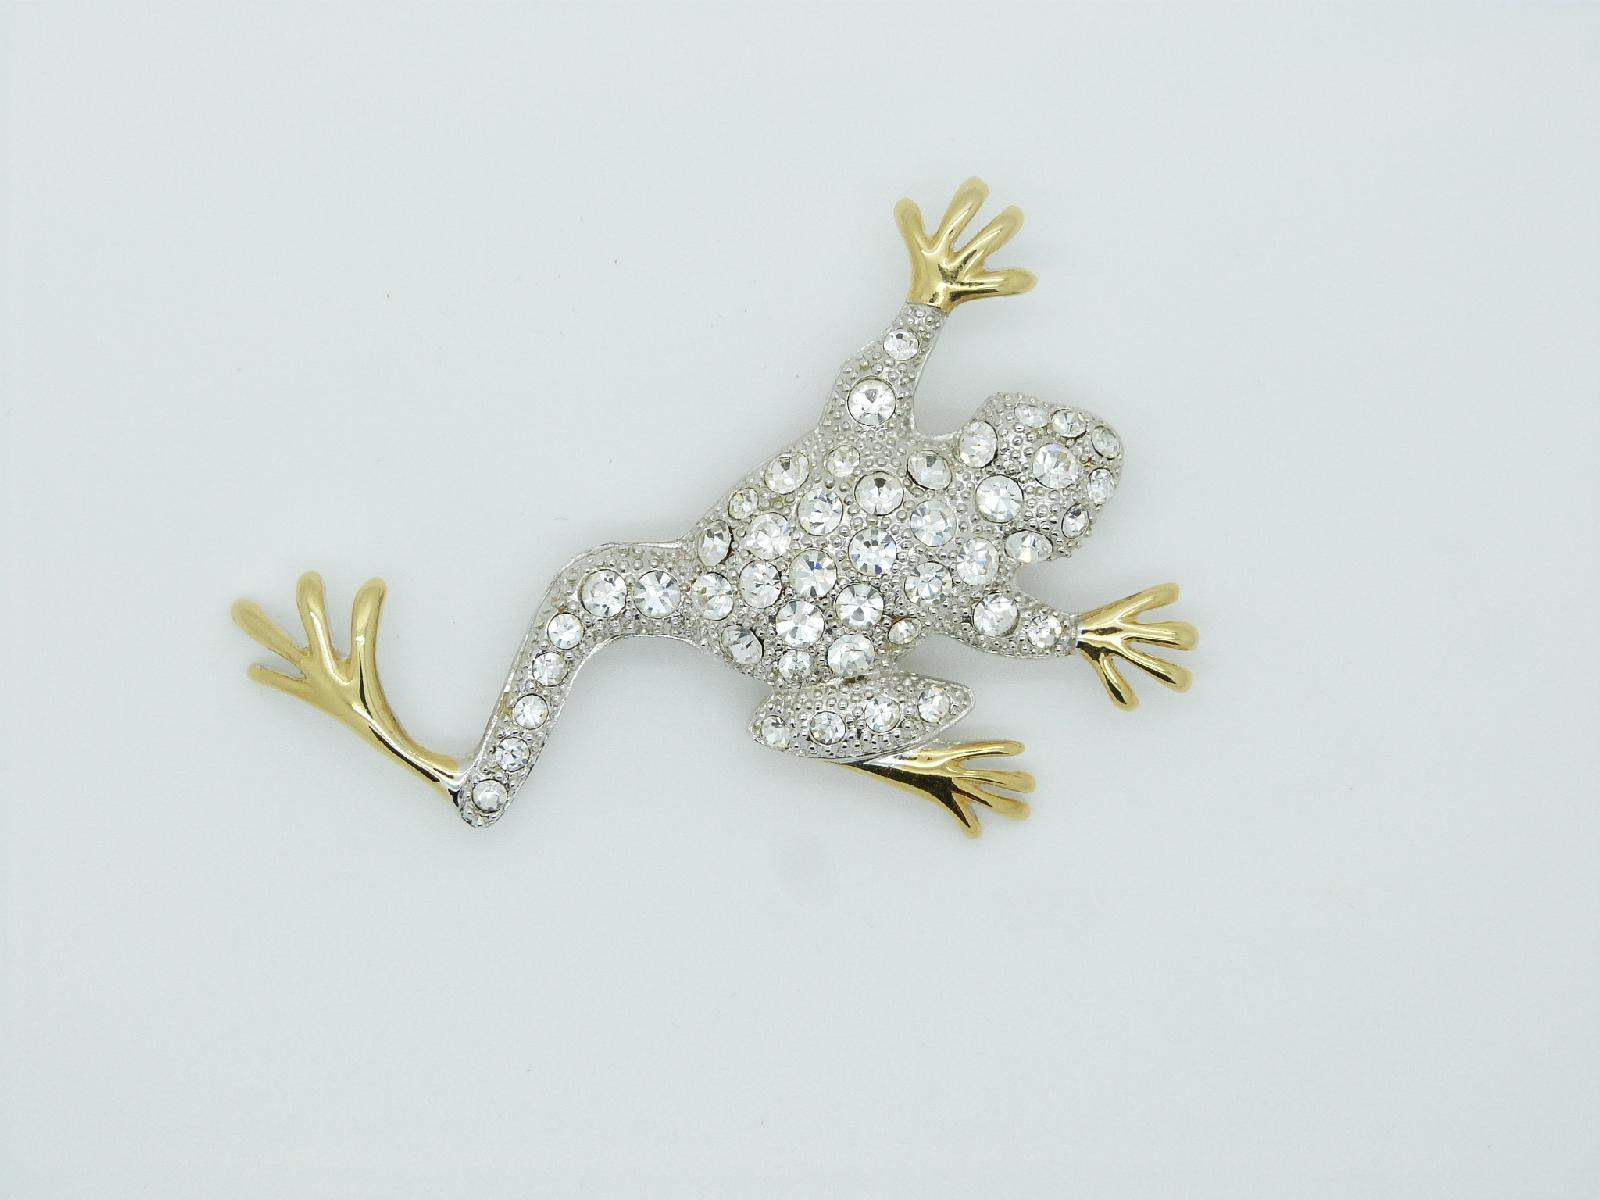 £15.00 - Vintage 80s Sparkling Crystal Diamante Quirky Goldtone Frog Brooch 8cms